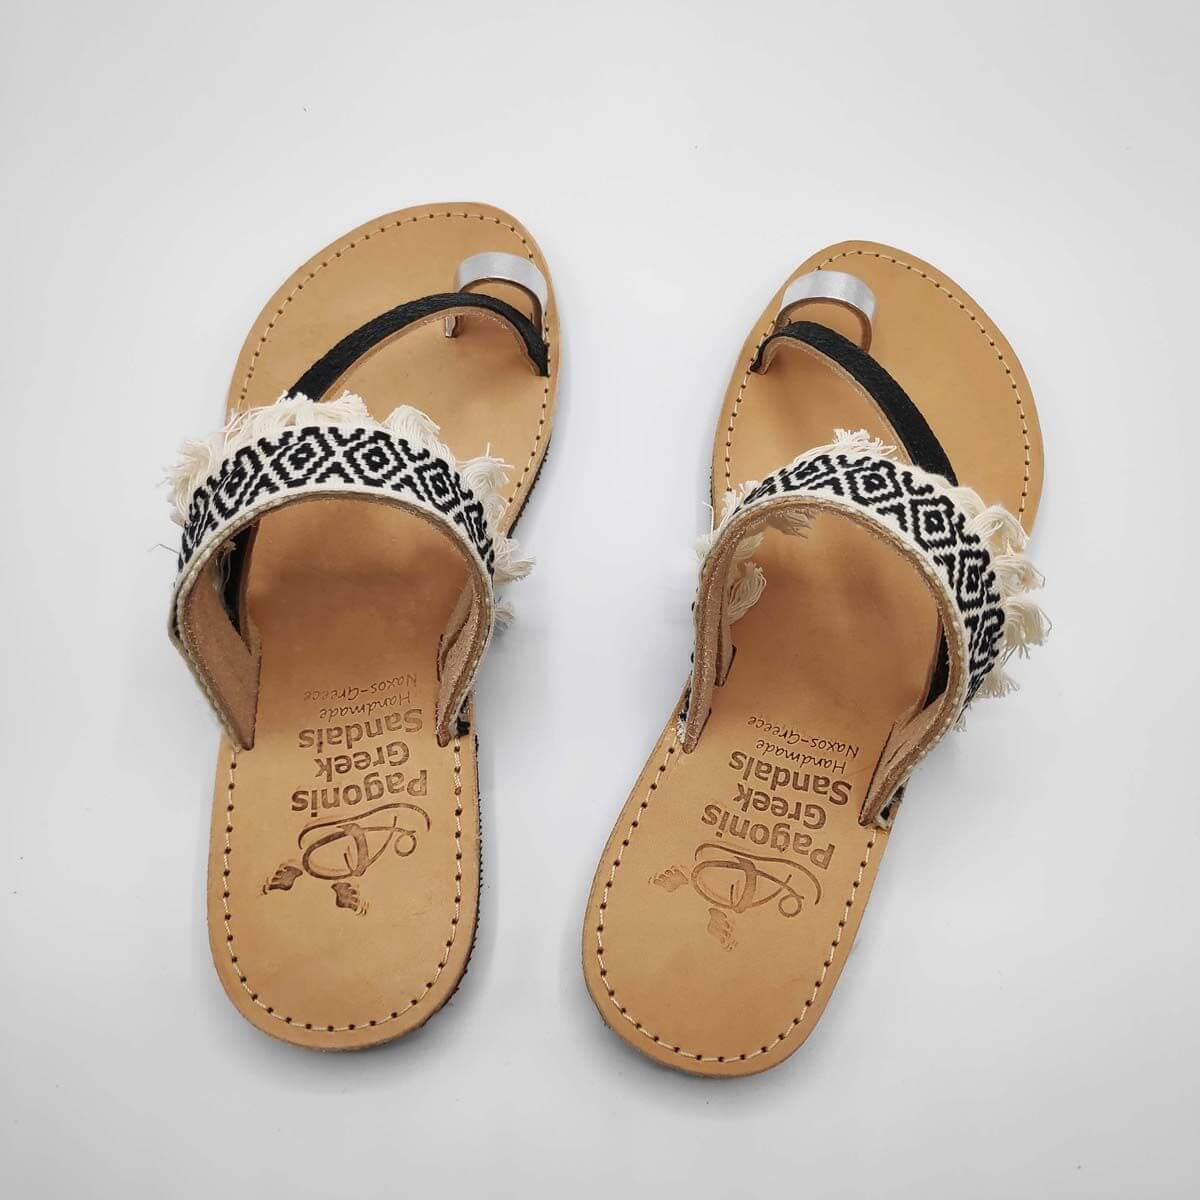 Black & White Fabric & Leather Boho Sandals with Fringes | Comi Boho | Pagonis Greek Sandals